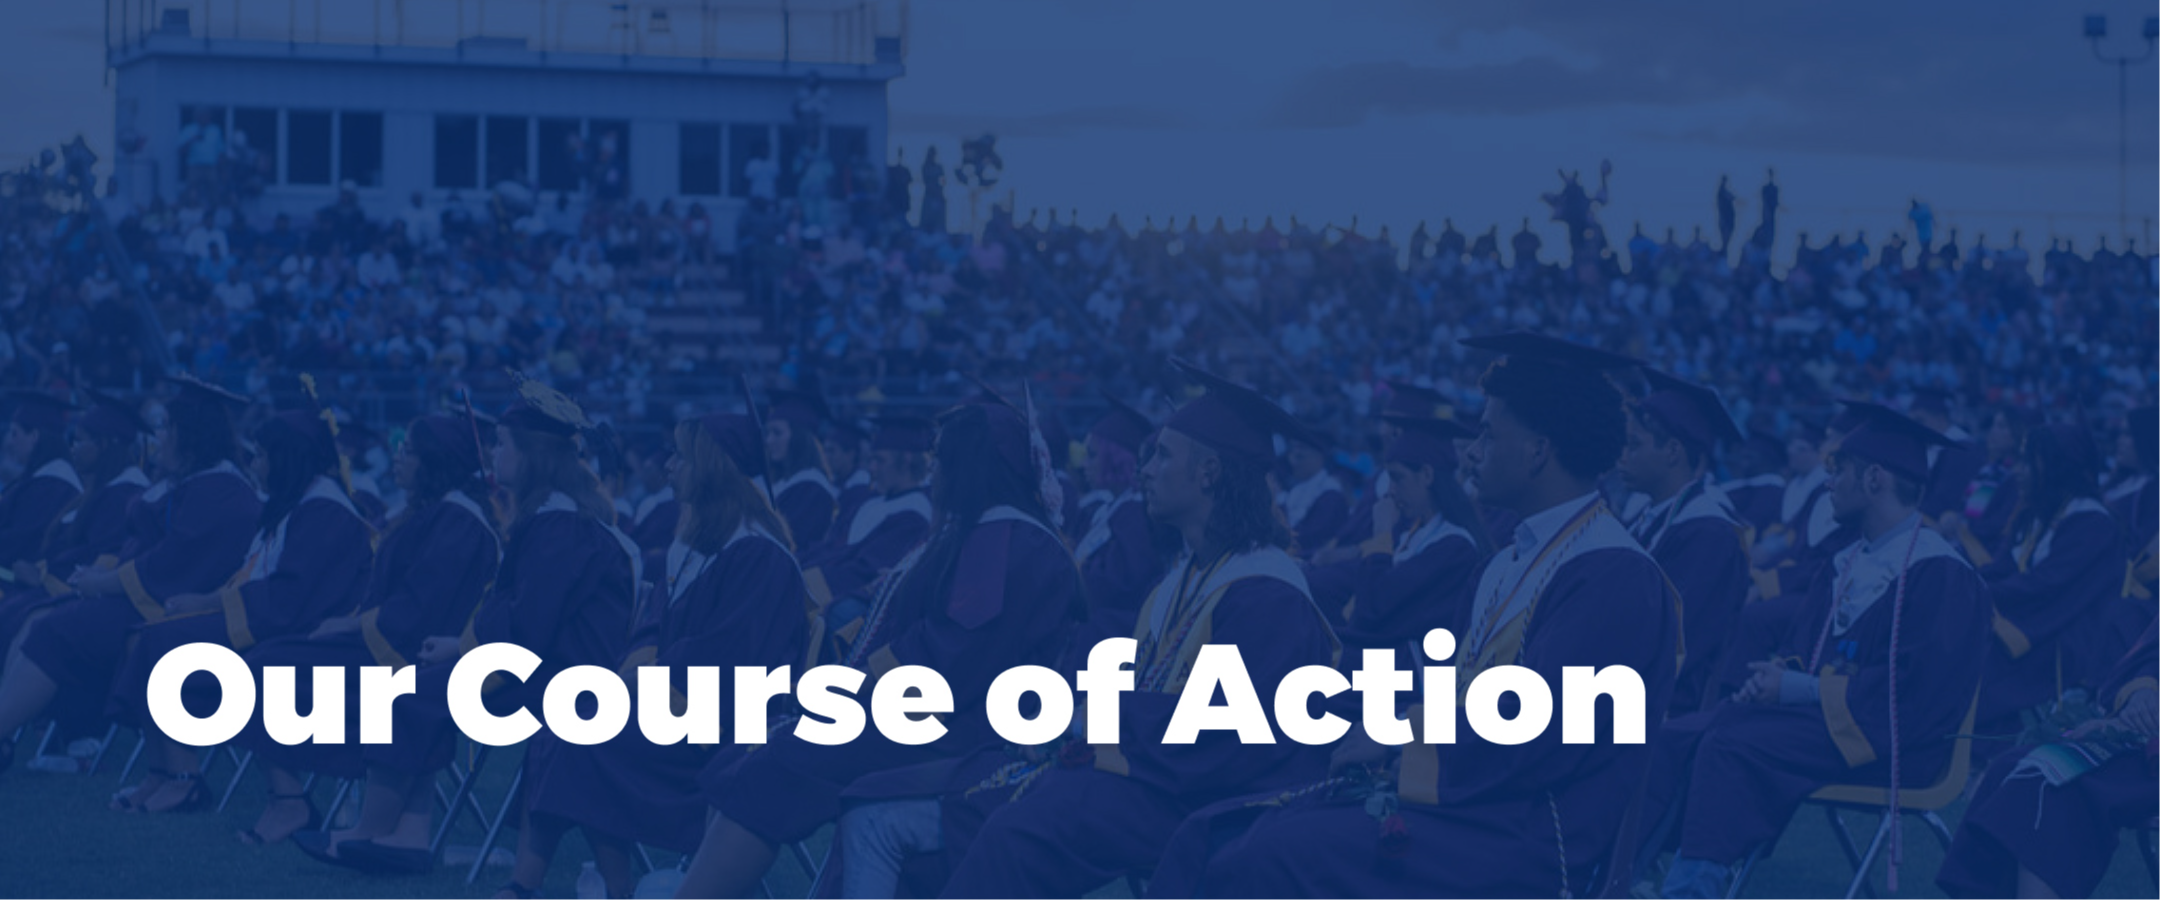 our course of action section cover image